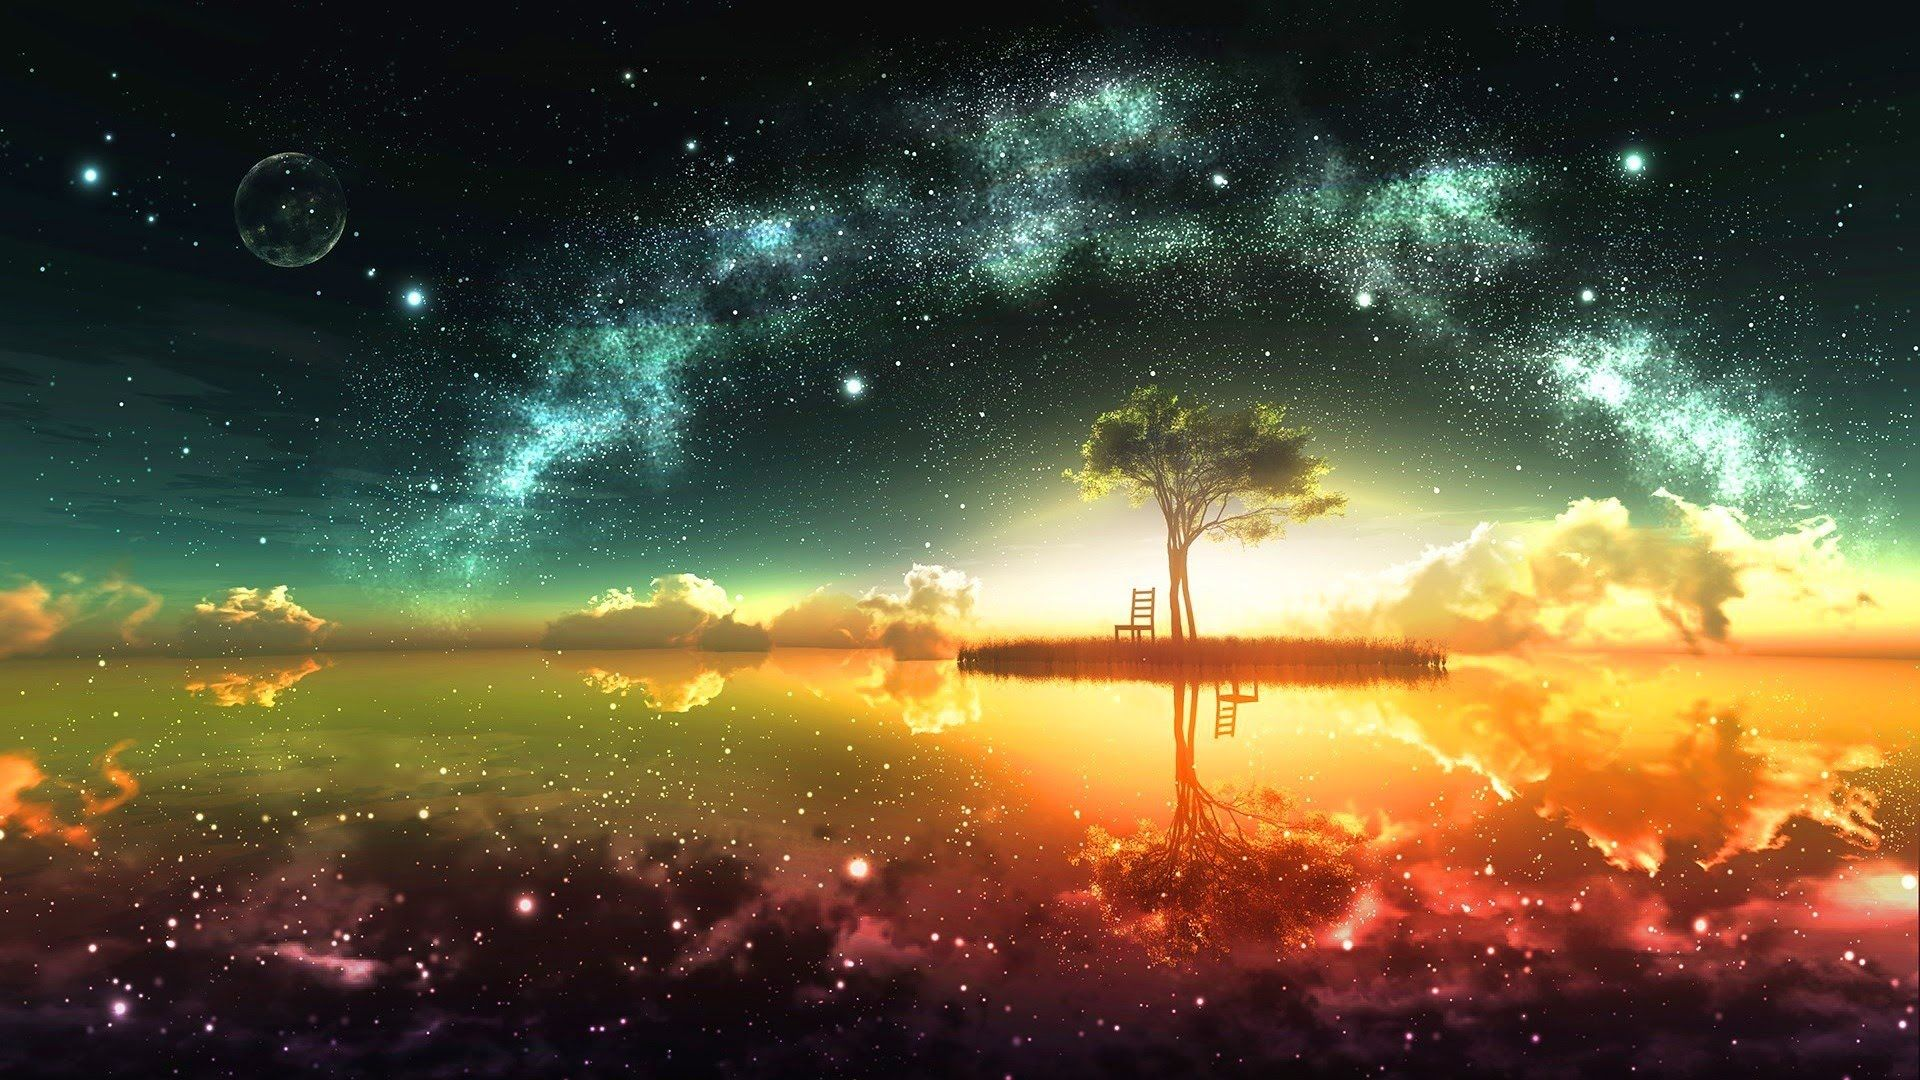 Abraham Hicks Realizing Your Dreams Night scenery